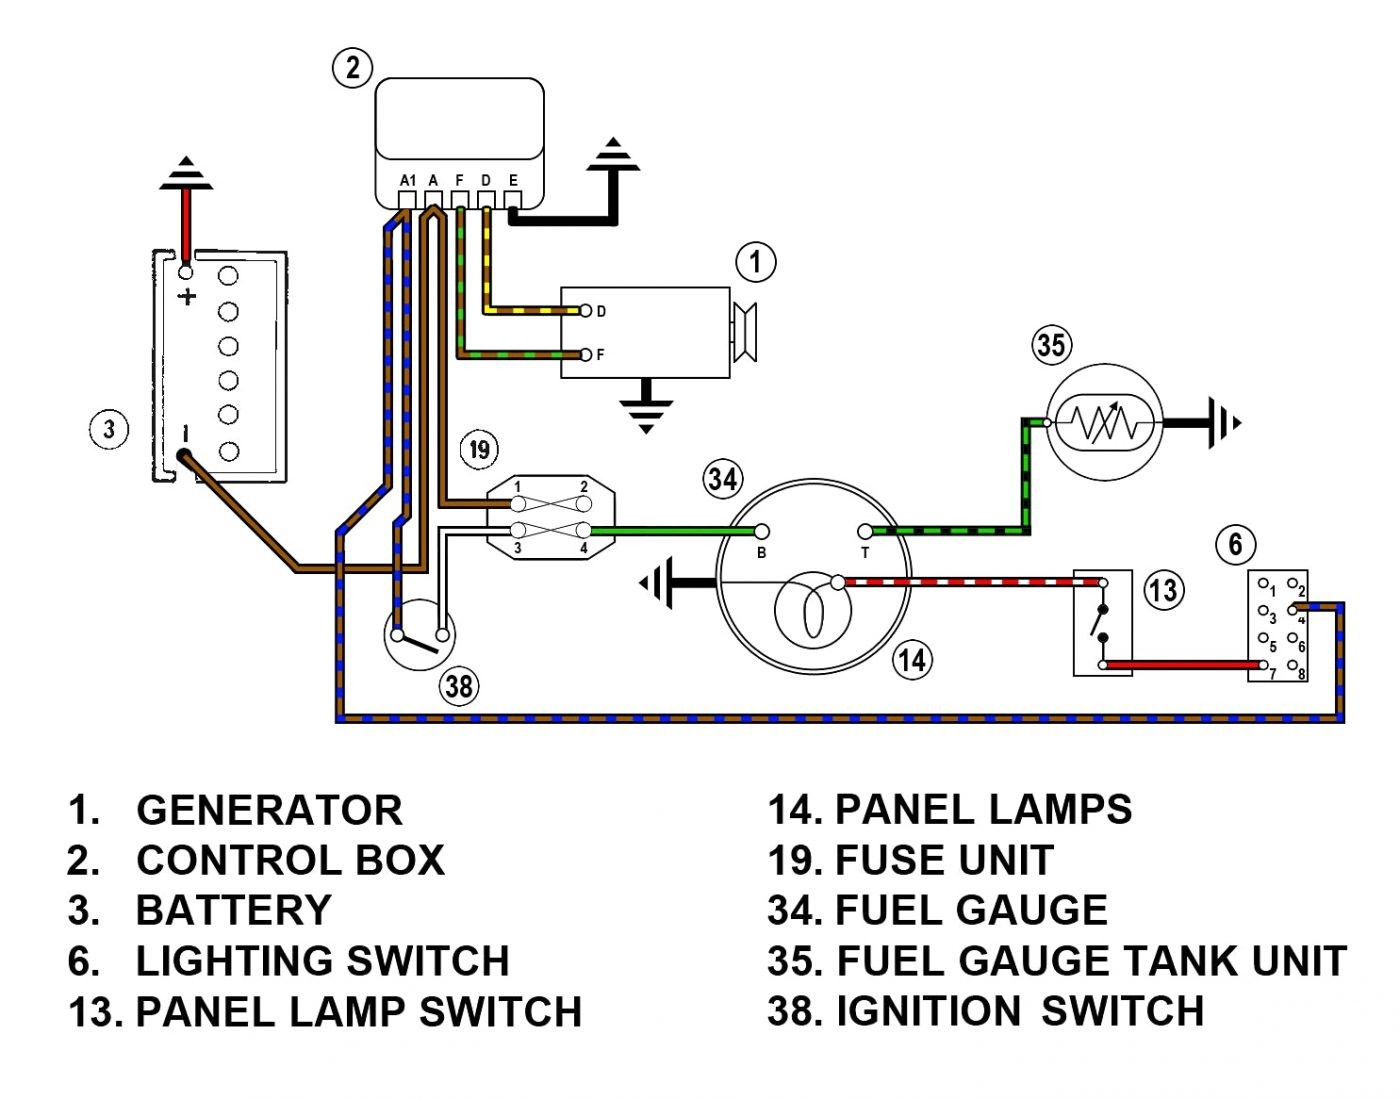 Vdo Gauge A2c53436982 Wiring Diagram - Trusted Wiring Diagram •